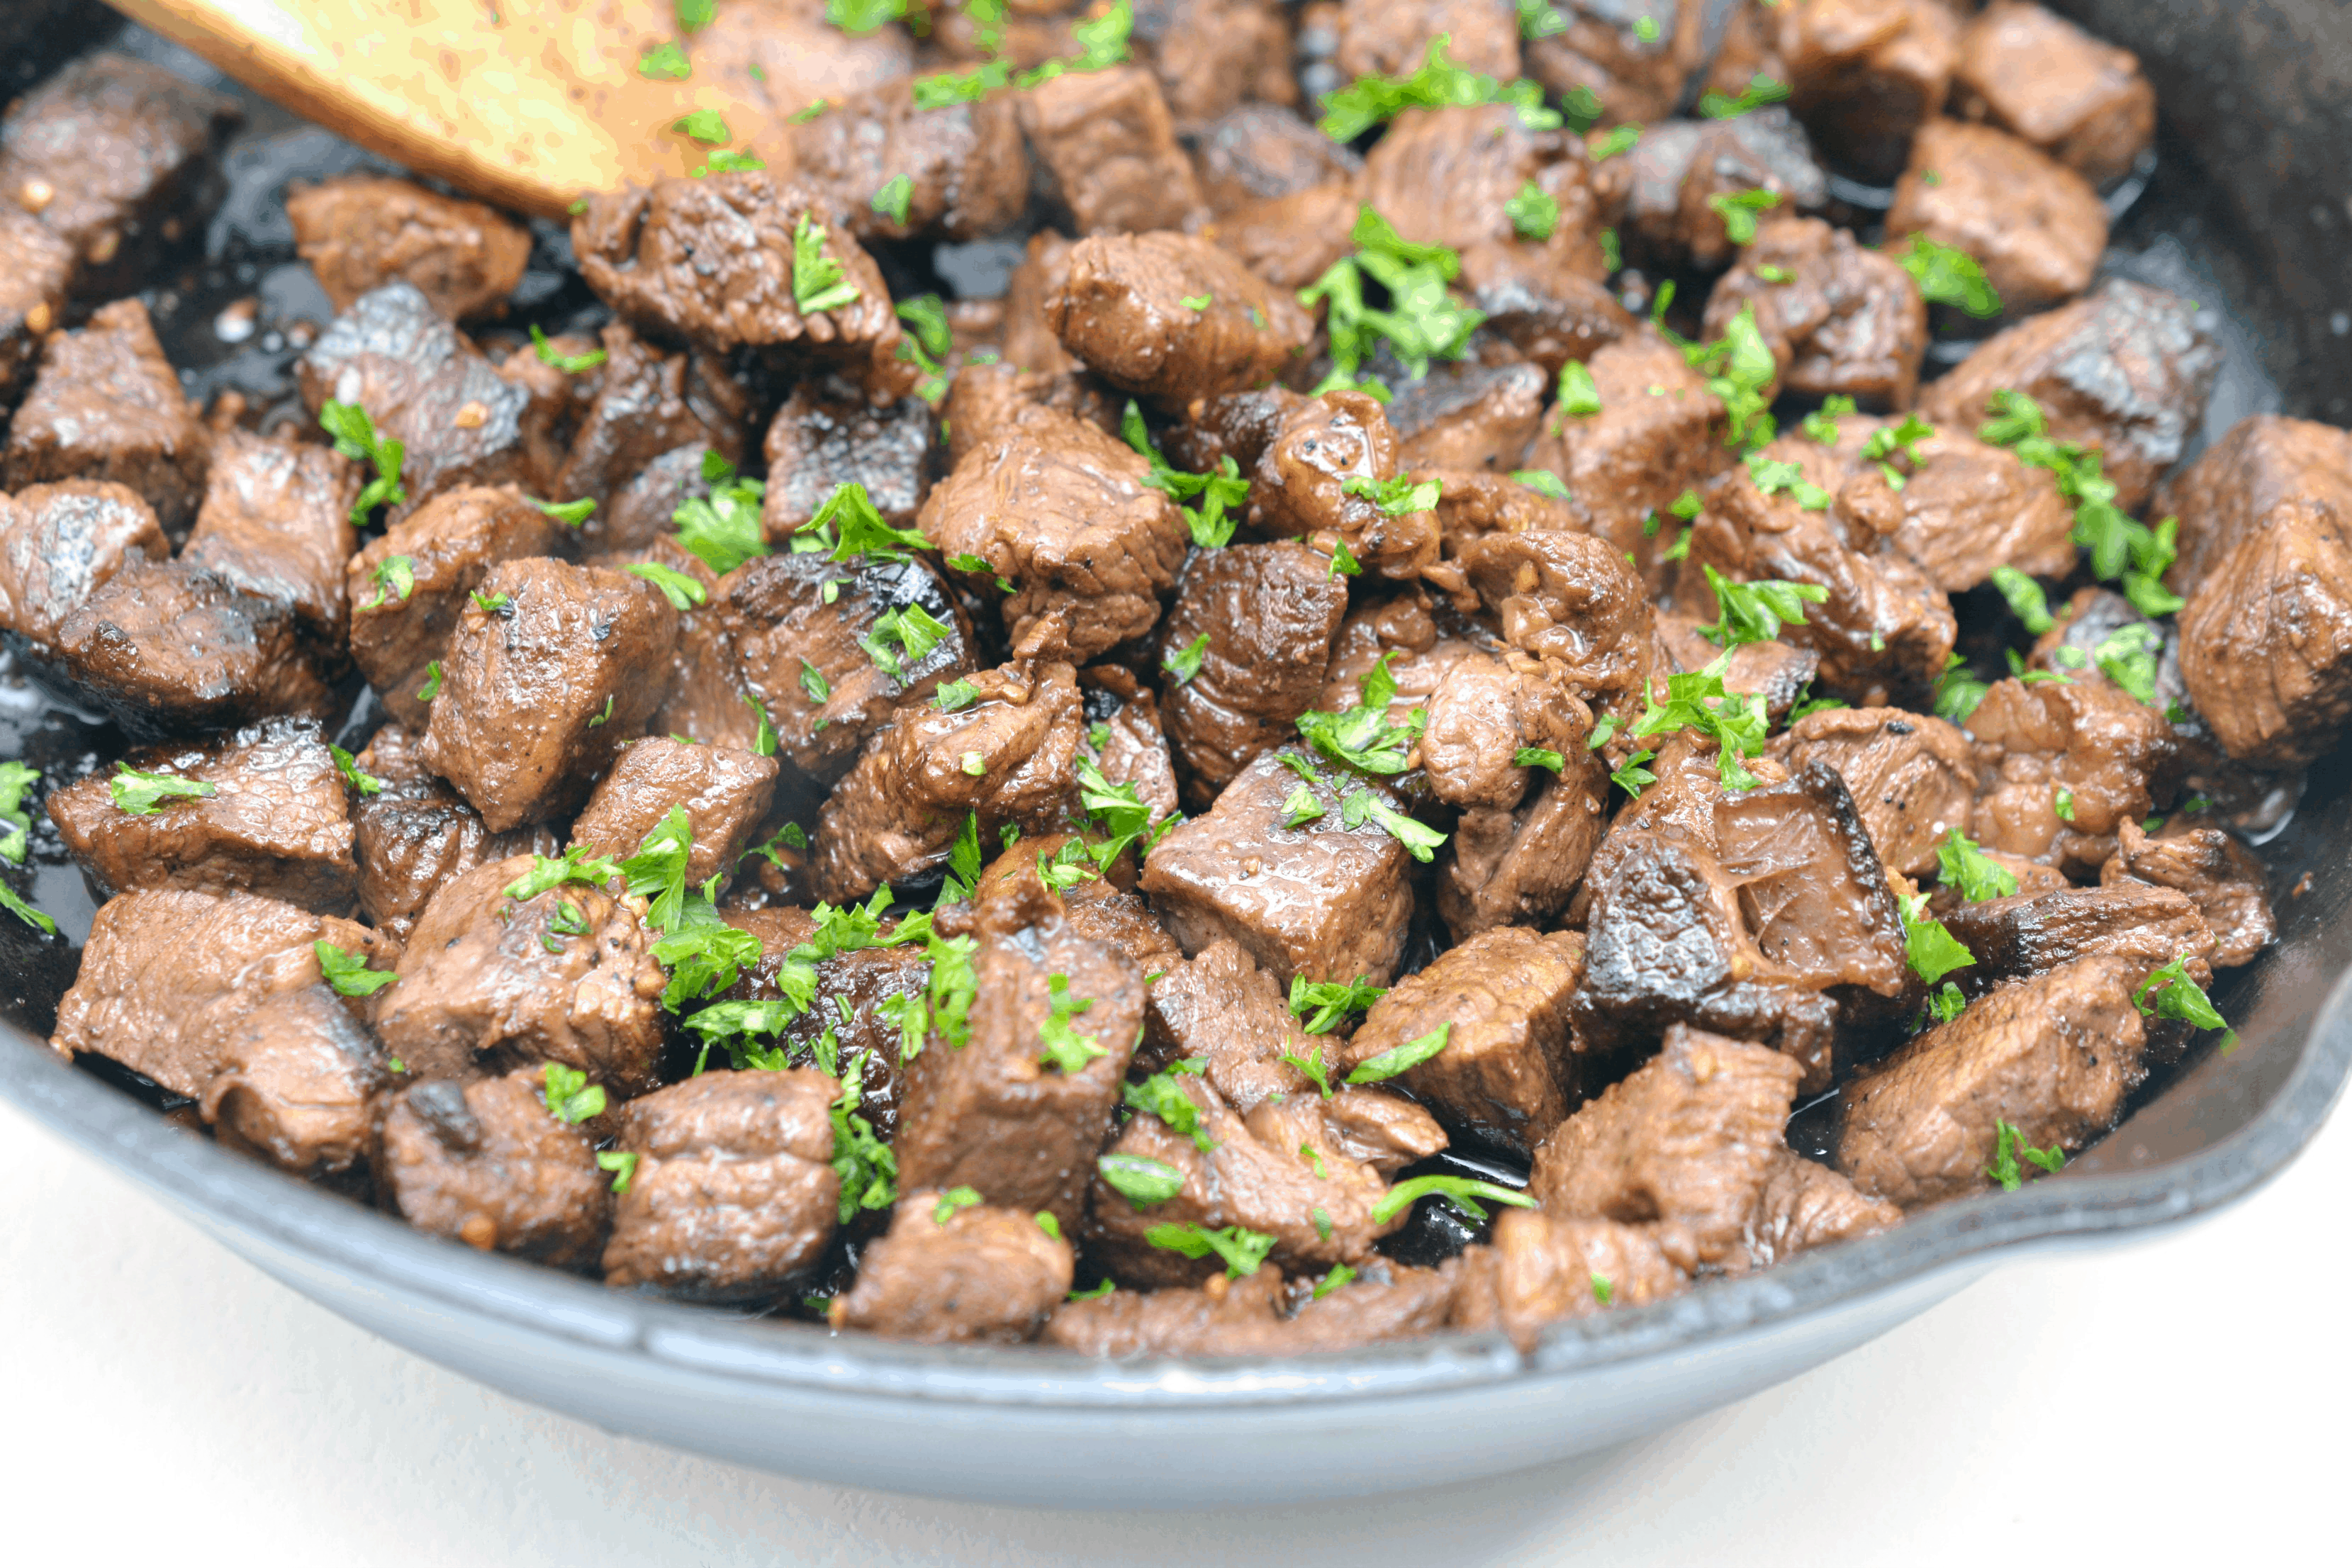 garlic steak bites in a pan topped with fresh herbs